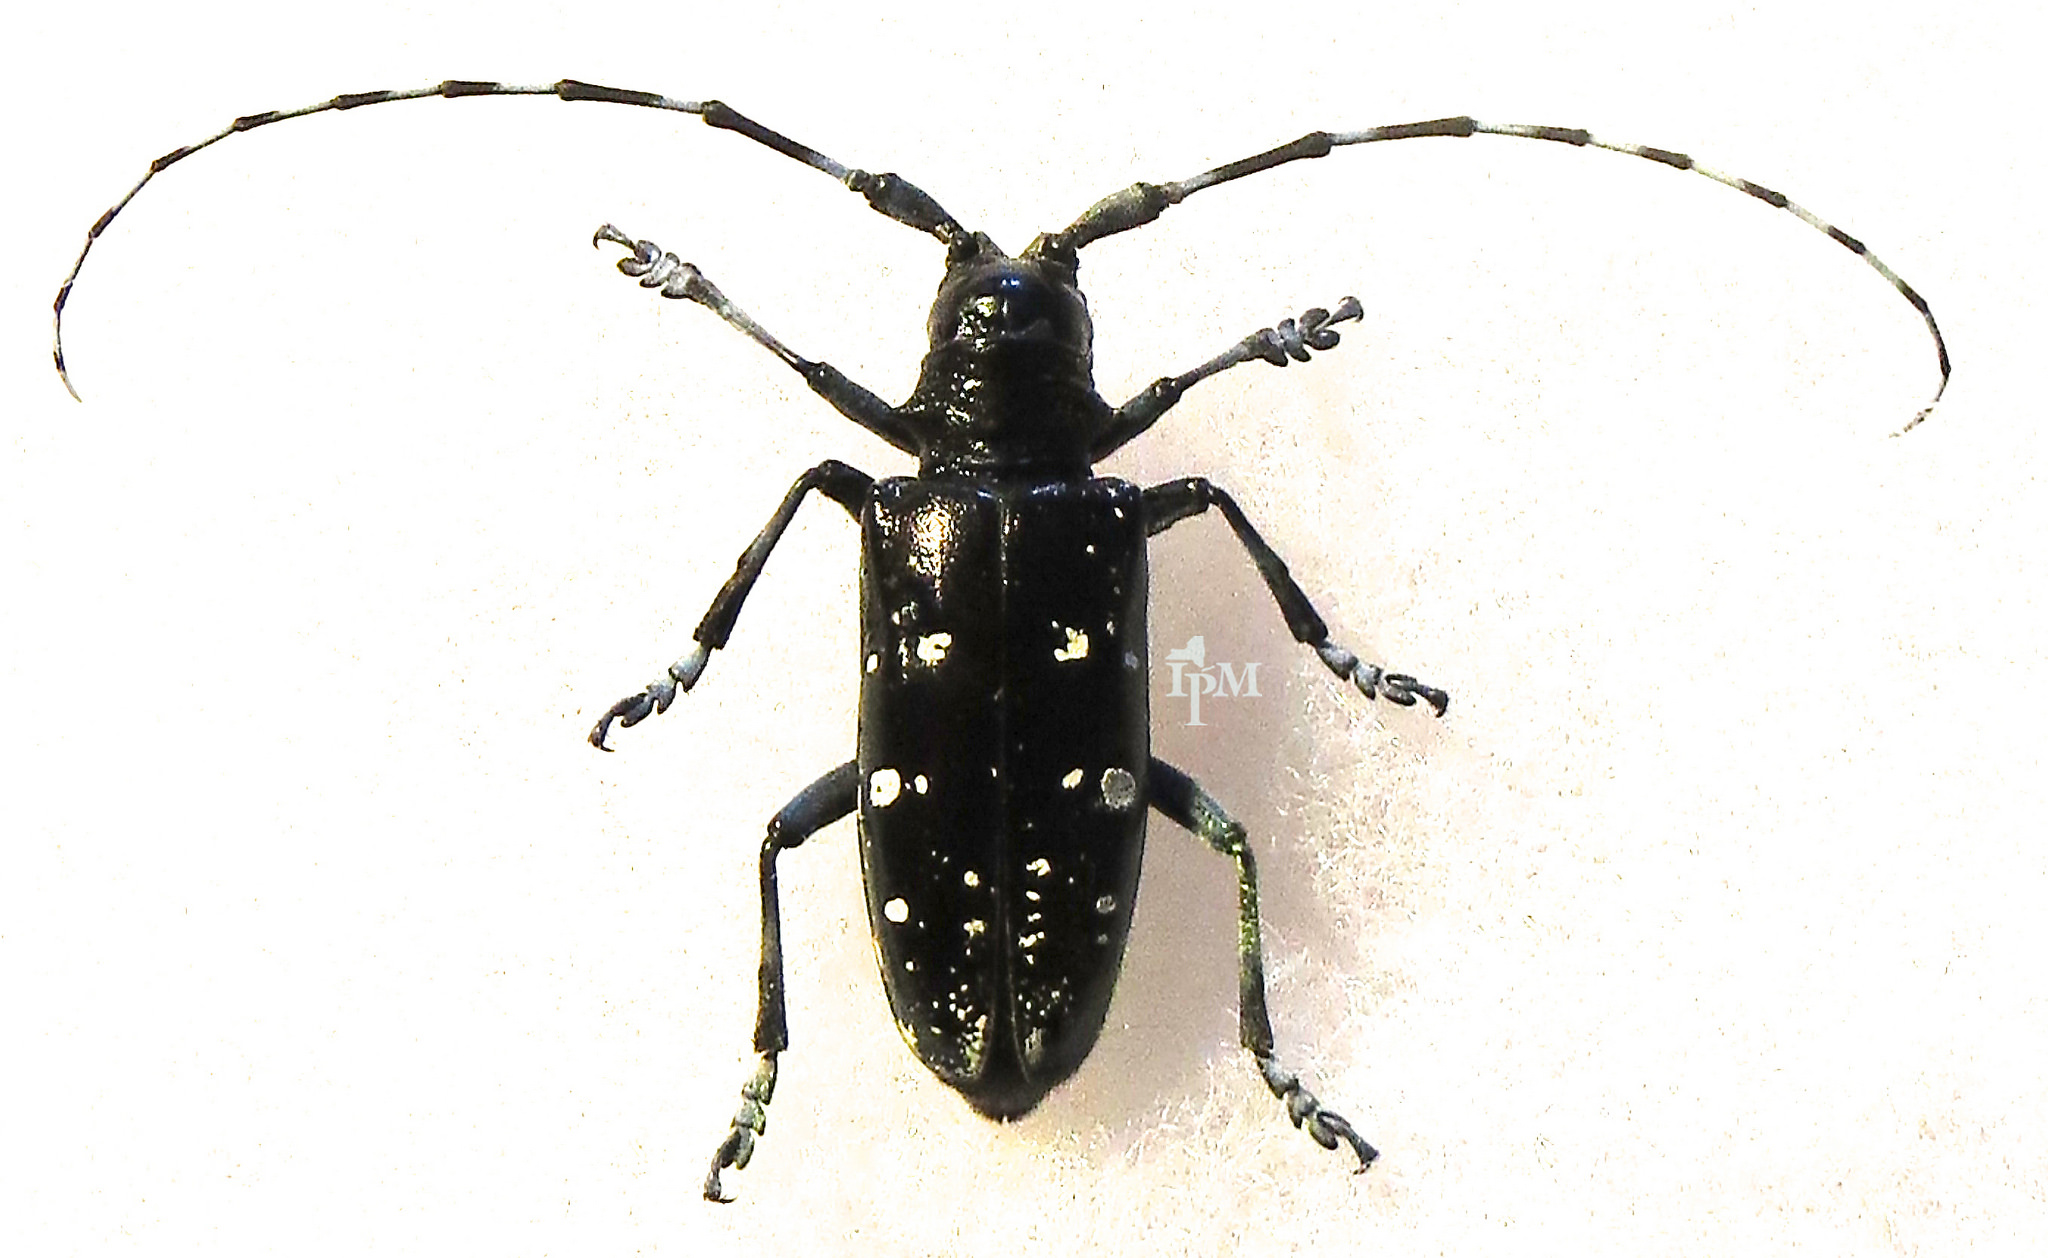 The Asian longhorn beetle is a major pest of hardwood tree. Photo courtesy of NY State IPM Program at Cornell University. CC BY-SA 2.0.